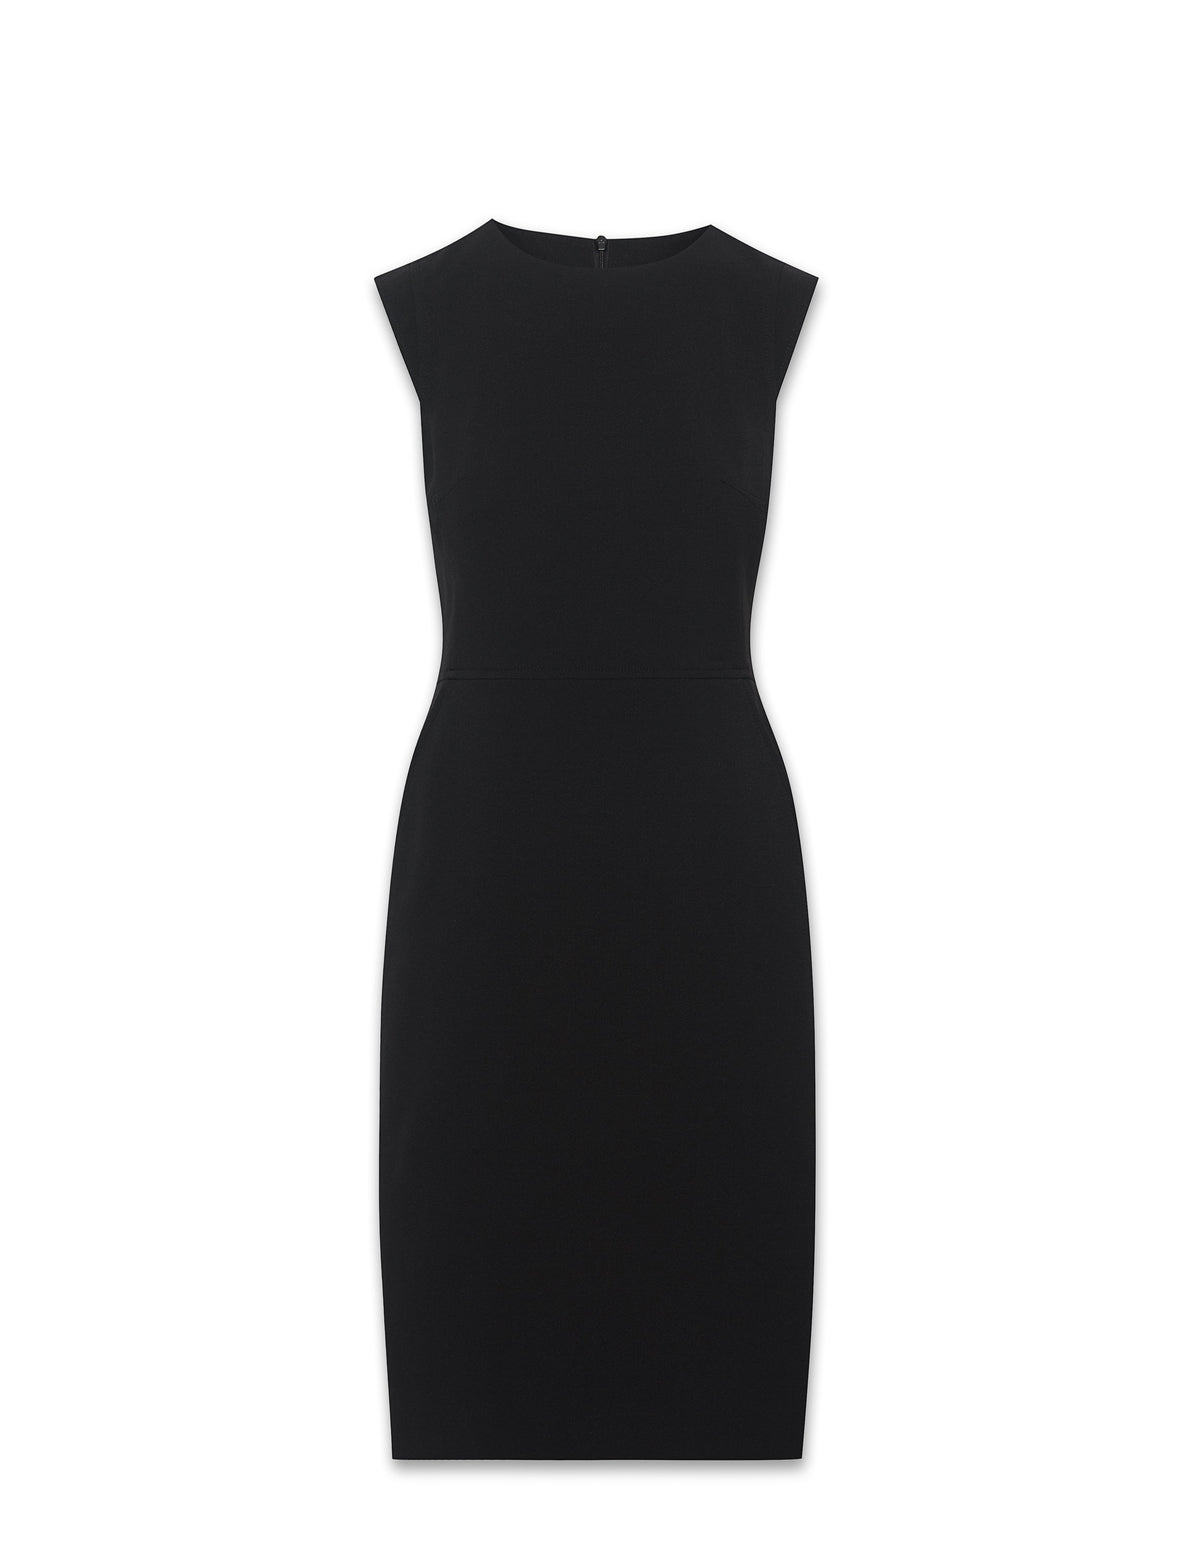 Anne Klein Black Sheath Dress With Extended Shoulder Sleeves